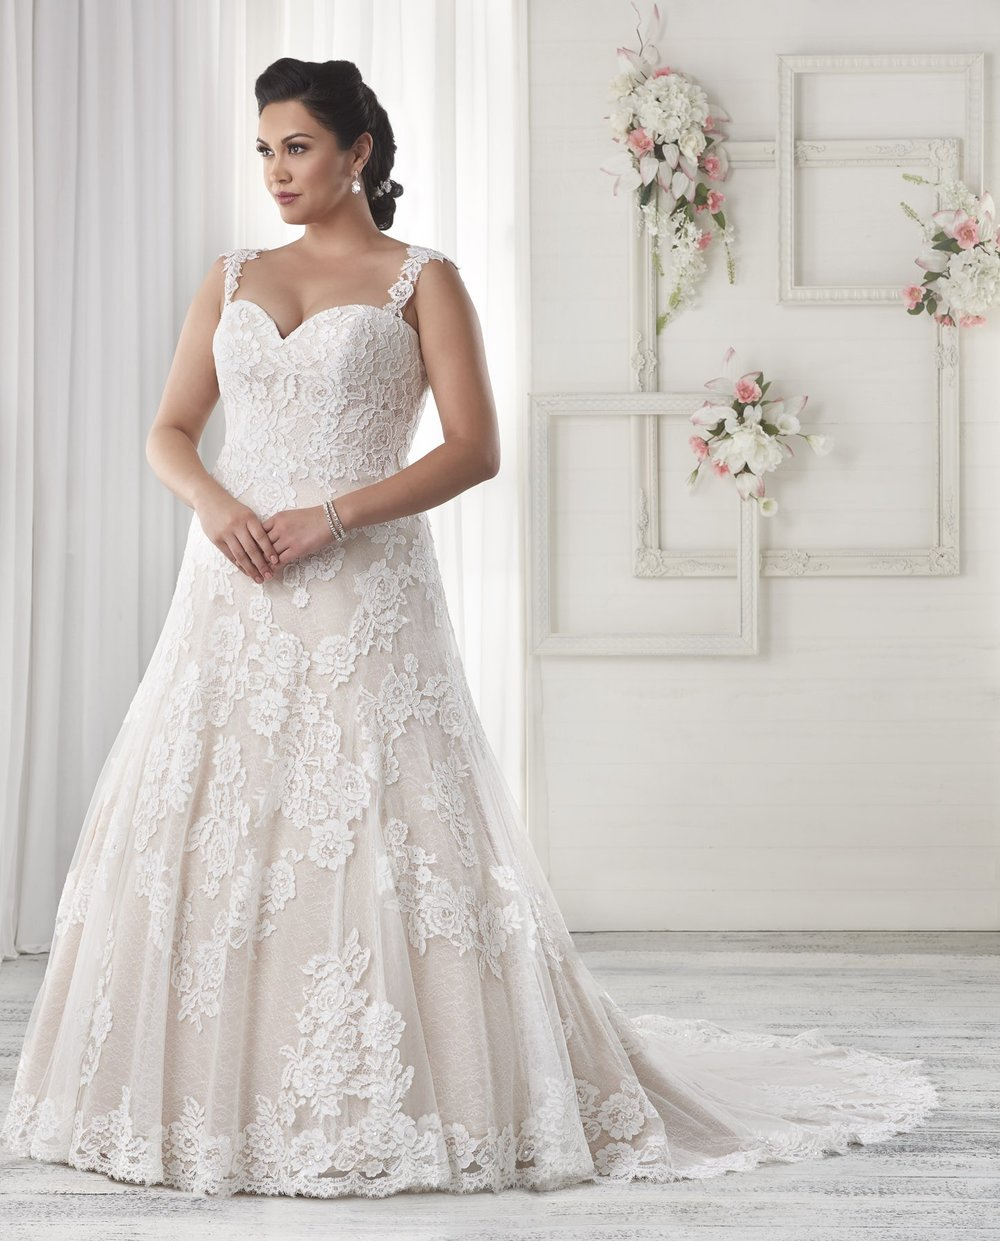 BonnyBridal-BridesbyYoung-PlusSizeWeddingDress-1603.jpg